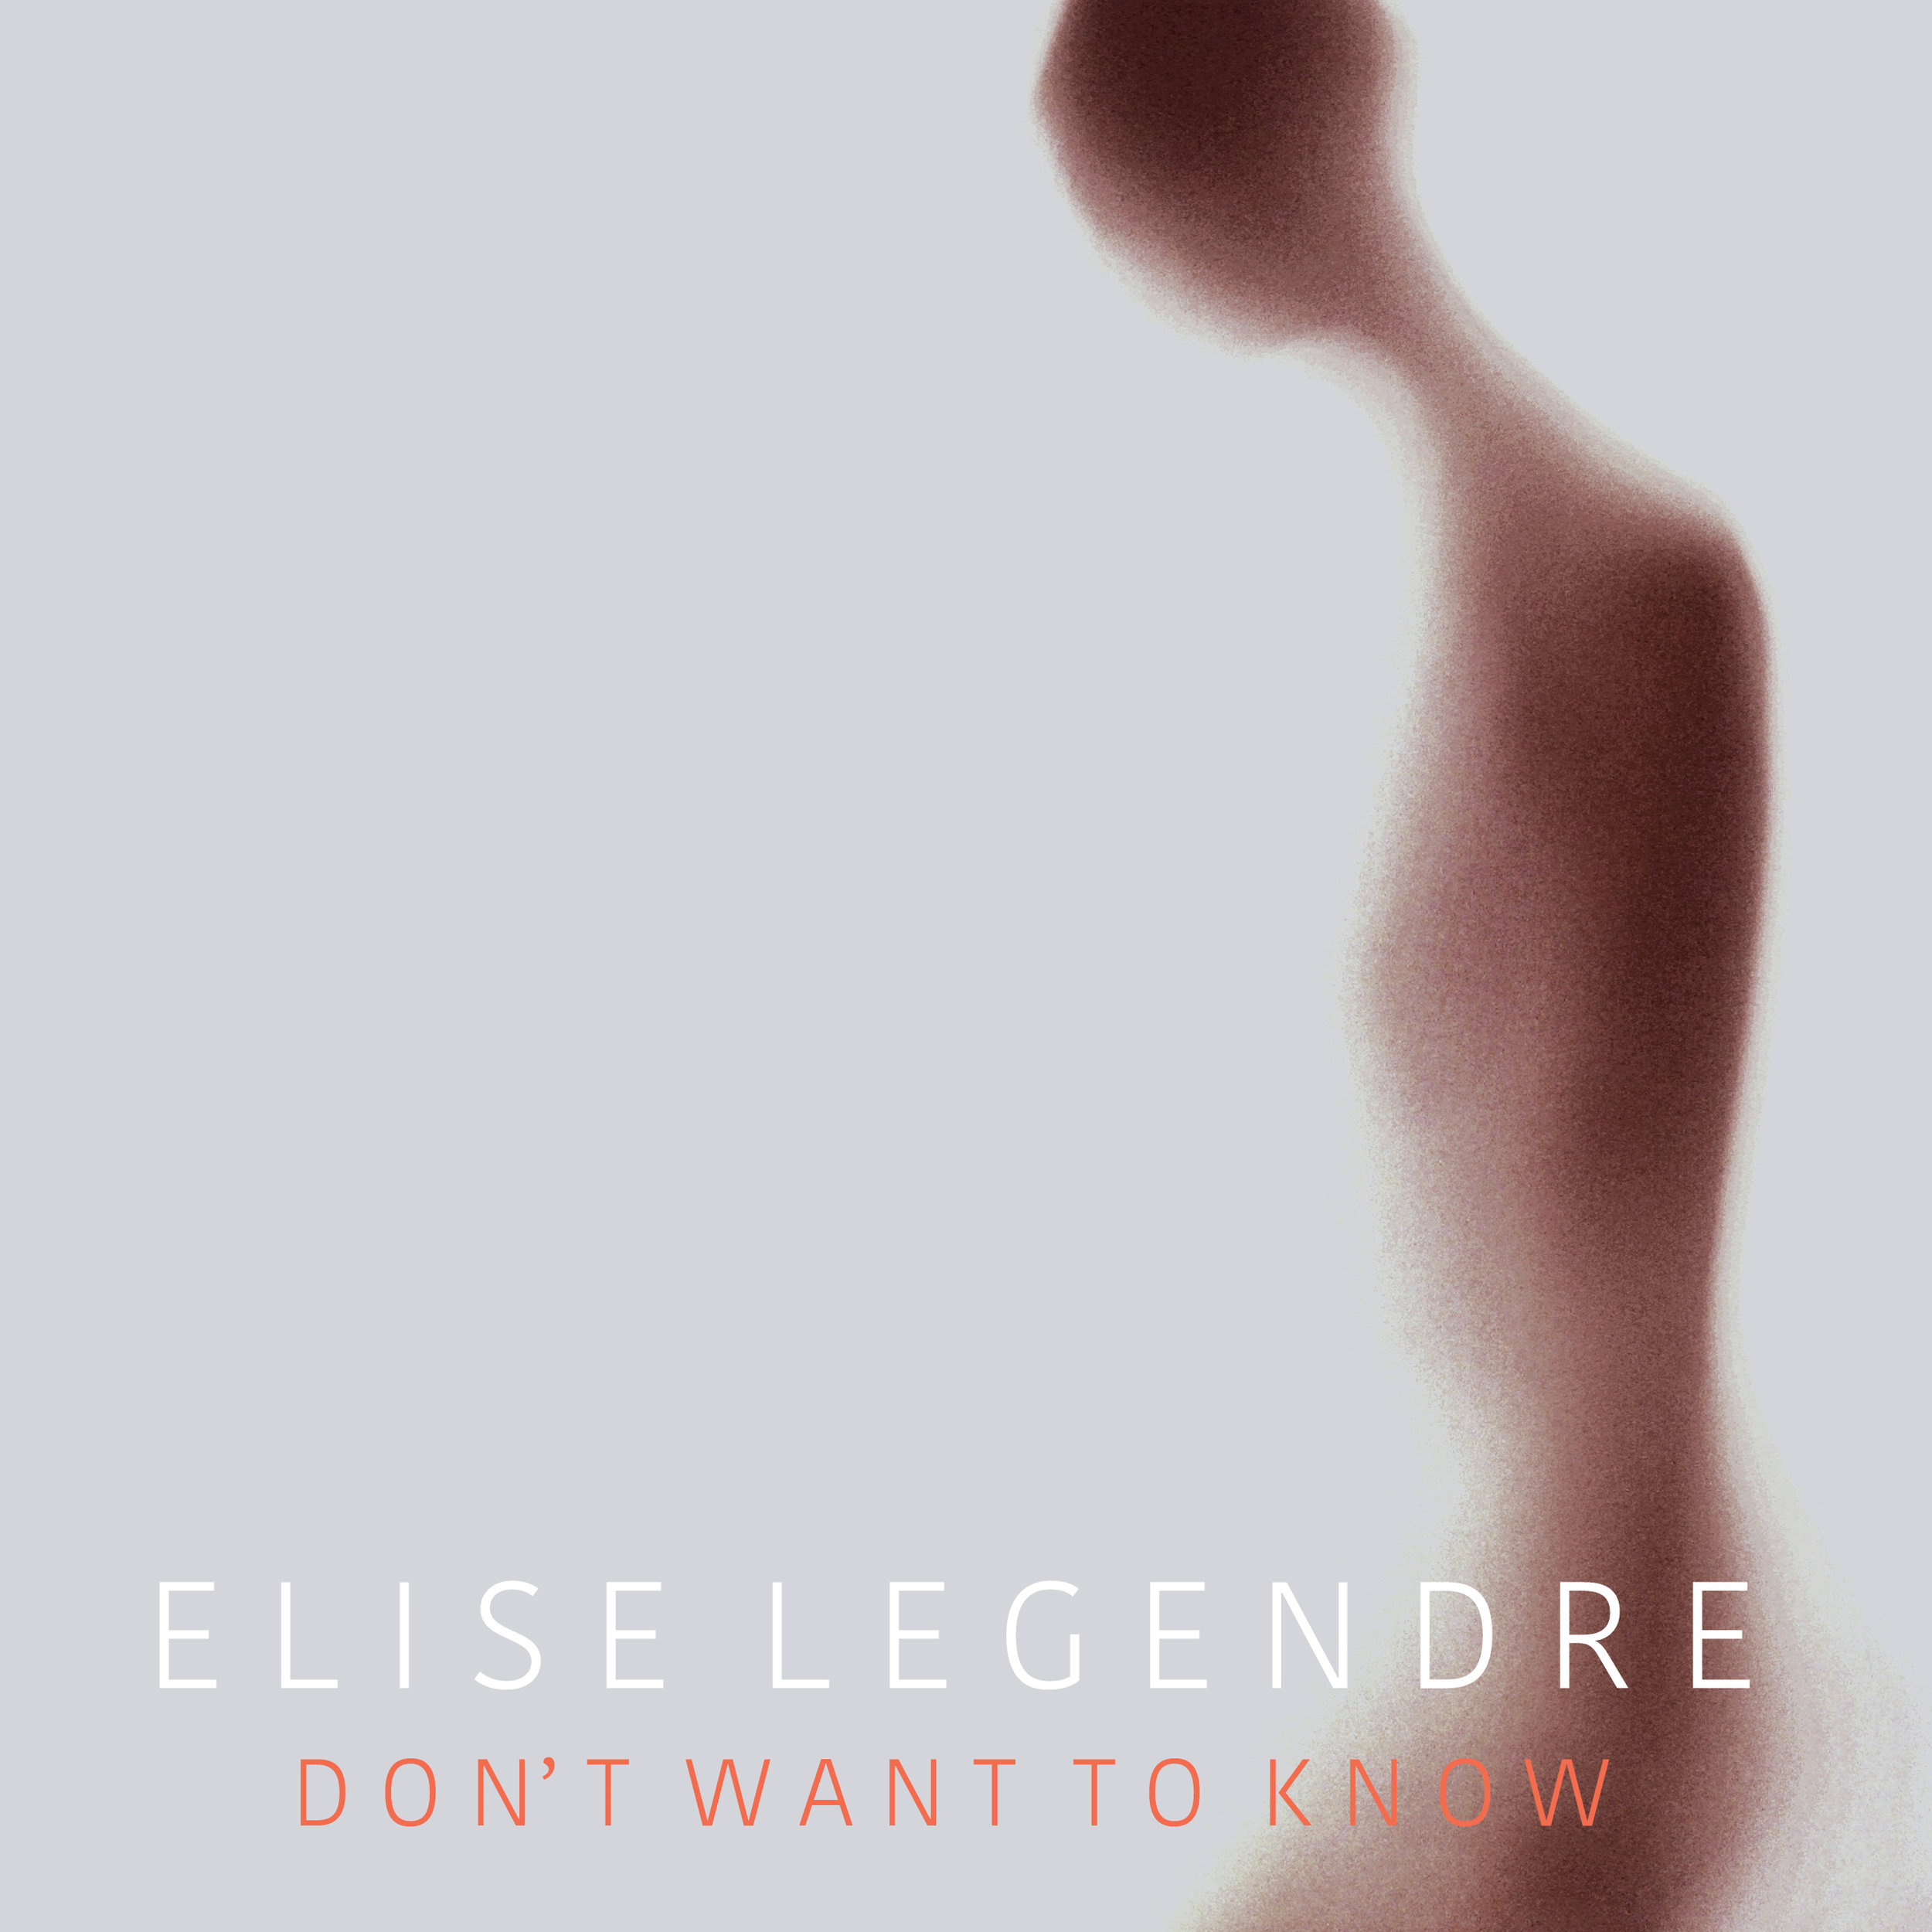 Elise-Legendre-I-Don'tWant-To-Know-sleeve_edited-2.jpg